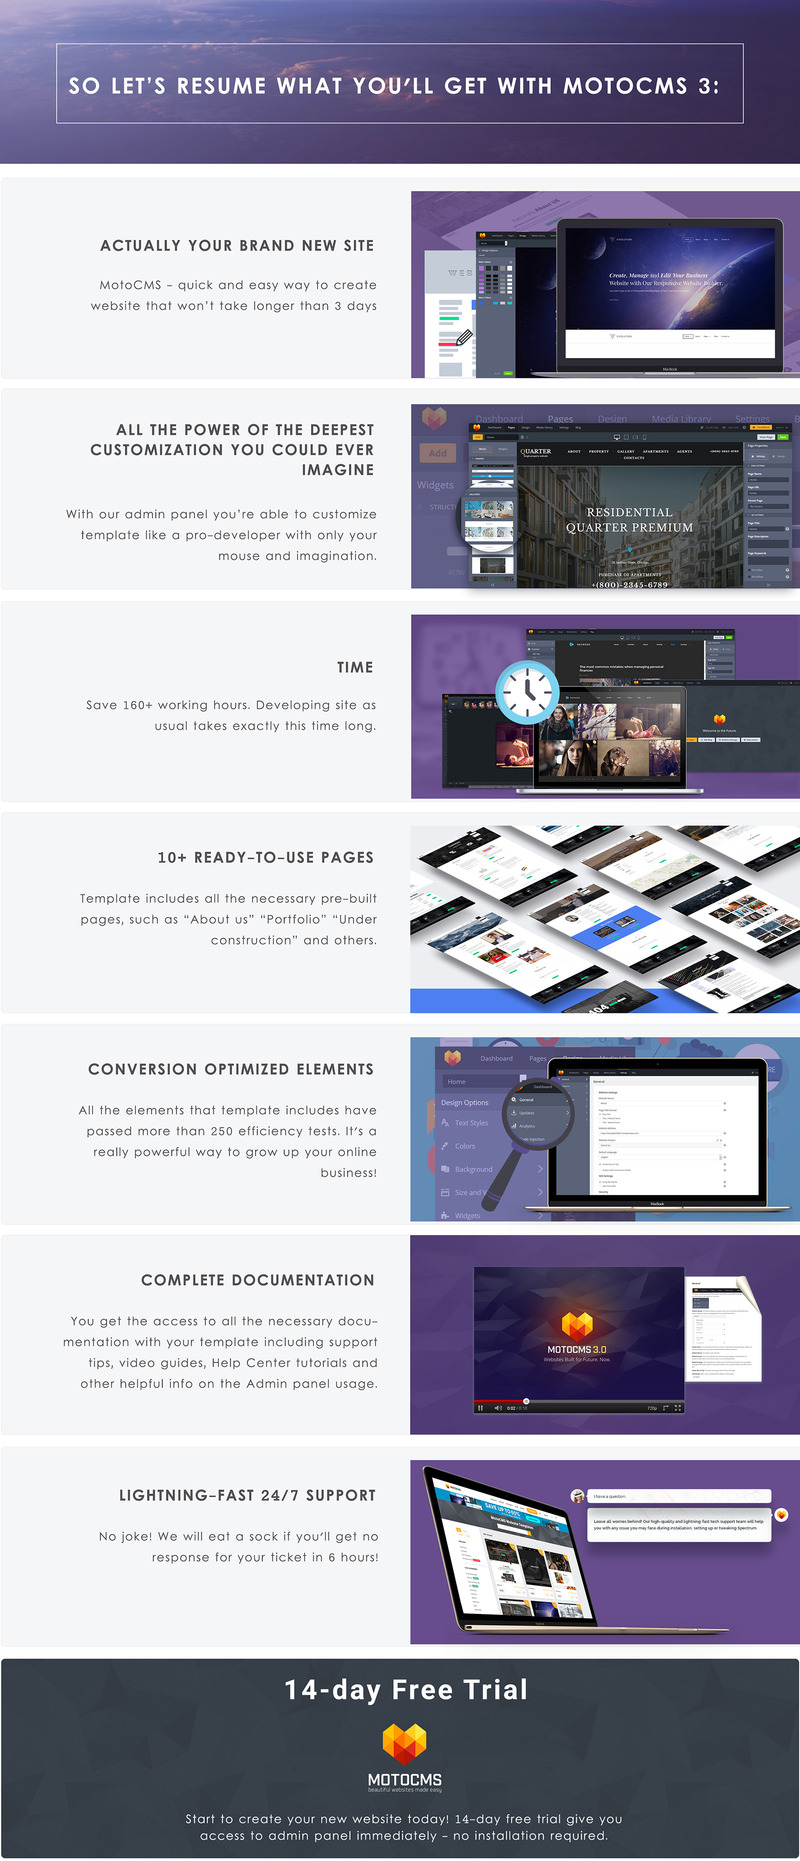 Calio - Psychology Moto CMS 3 Template - Features Image 6